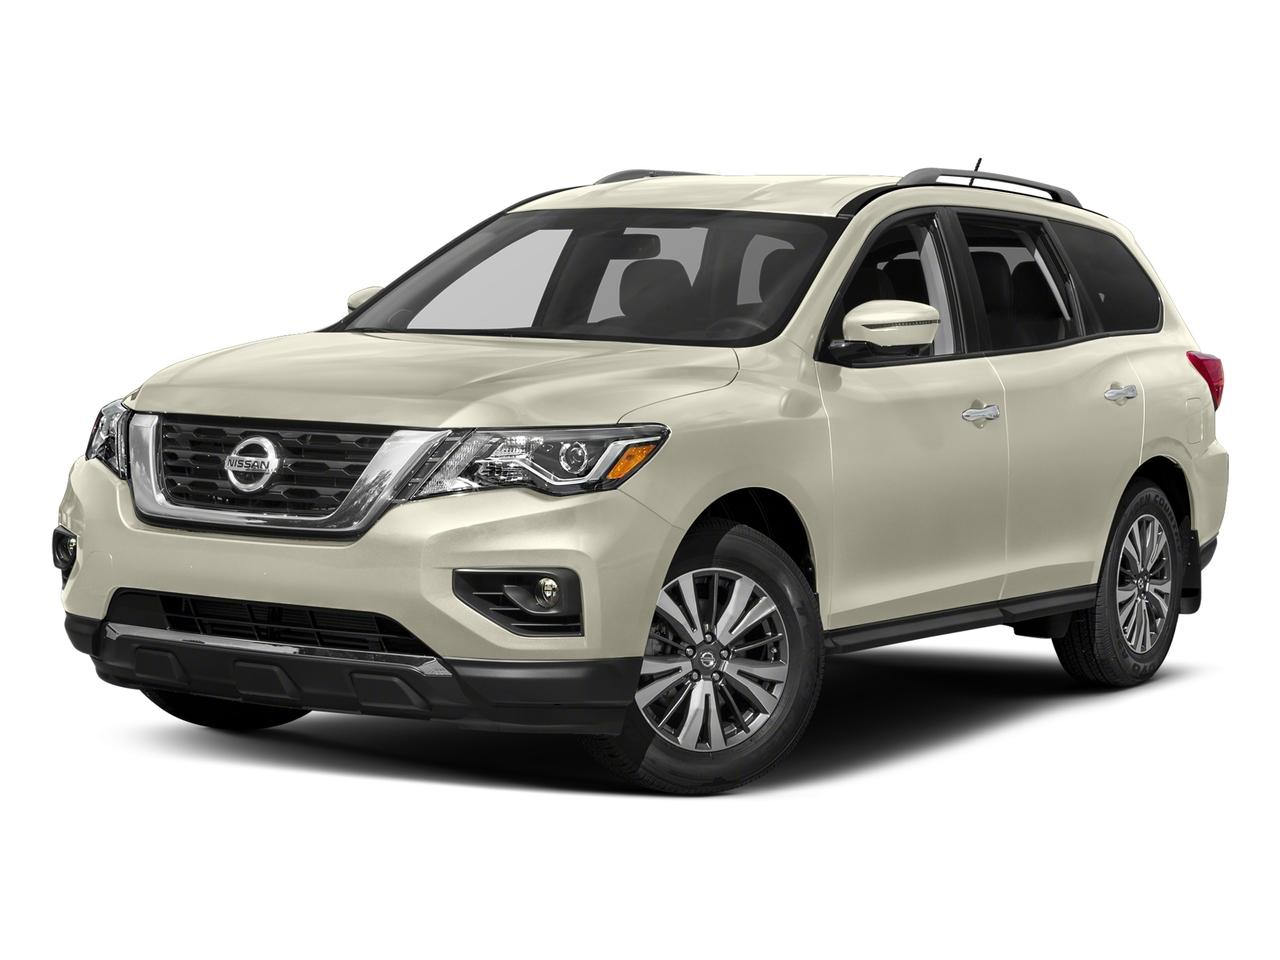 2017 Nissan Pathfinder Vehicle Photo in Quakertown, PA 18951